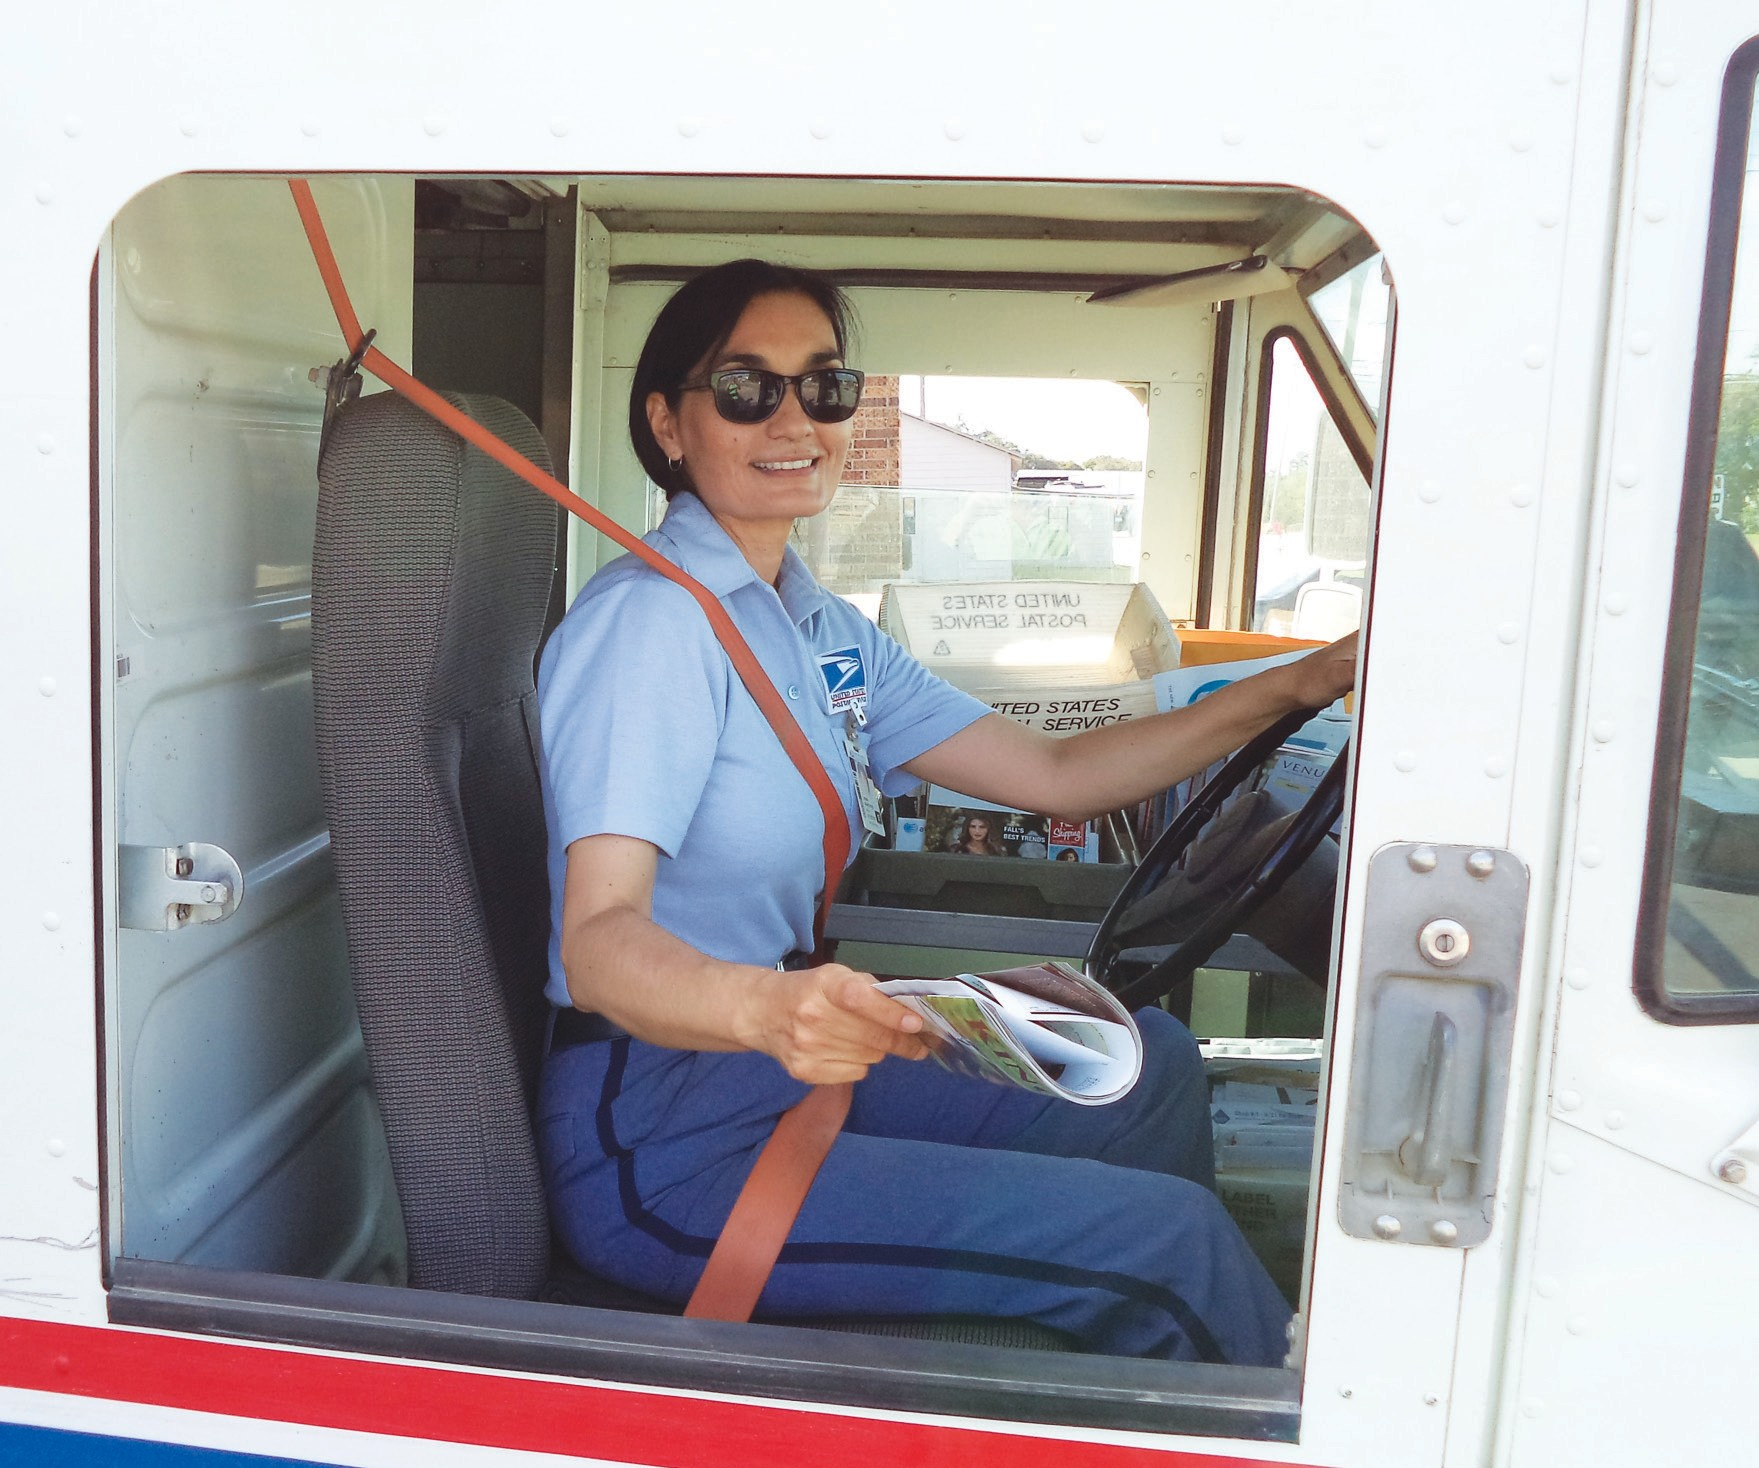 Josie Martinez, a U.S. Postal Service letter carrier in Jourdanton, was recognized for her safe driving by receiving the Million Mile Club plaque from the National Safety Council. Martinez has driven her route accident free for 30 years.